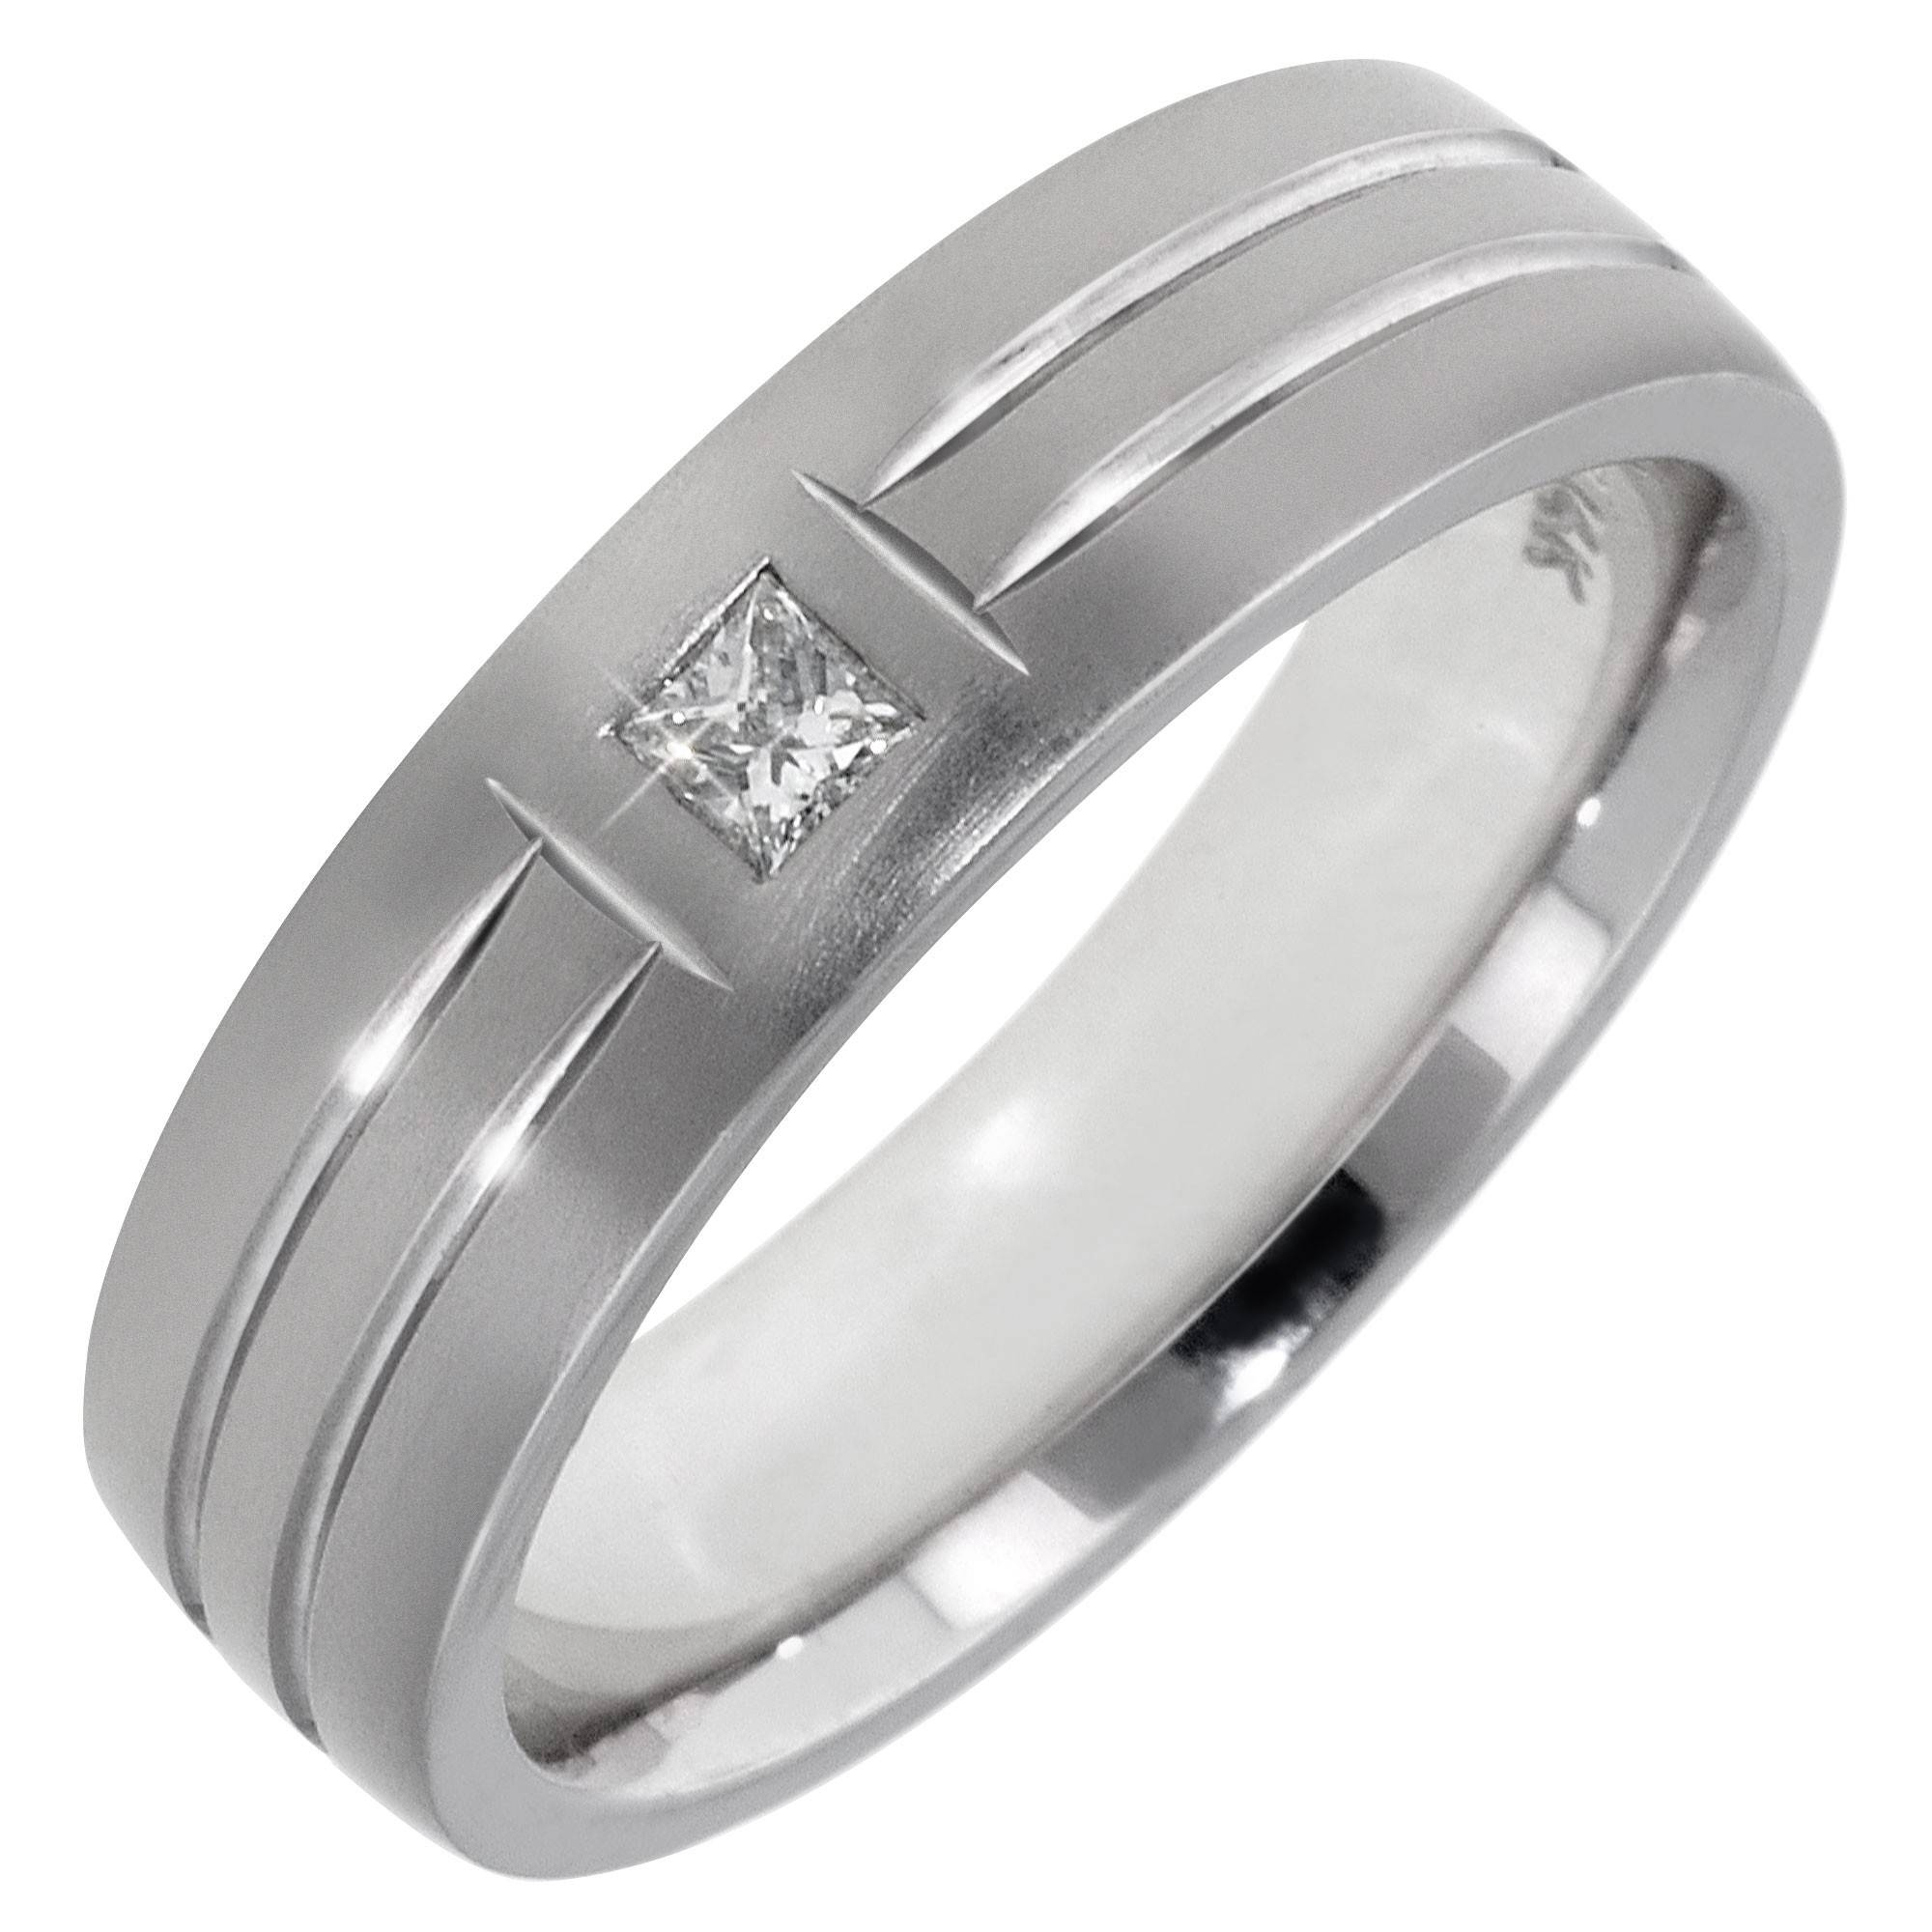 Square Cut Diamond Mens Wedding Band In 14Kt White Gold 1 10Ct Tw